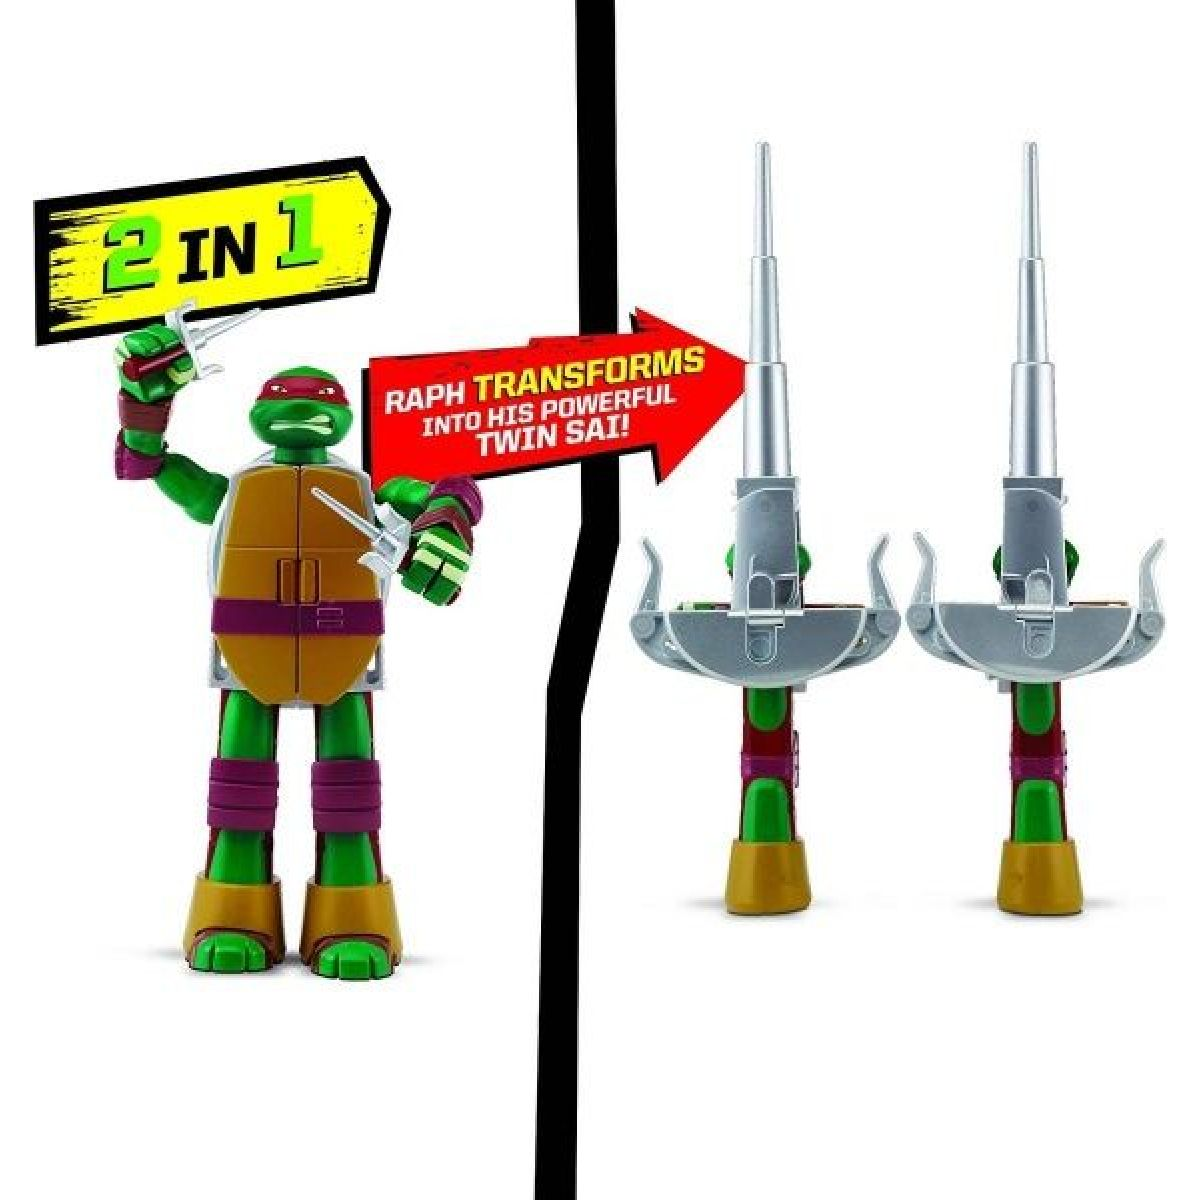 Playmates TMNT Želvy Ninja Transform to weapon Raphael